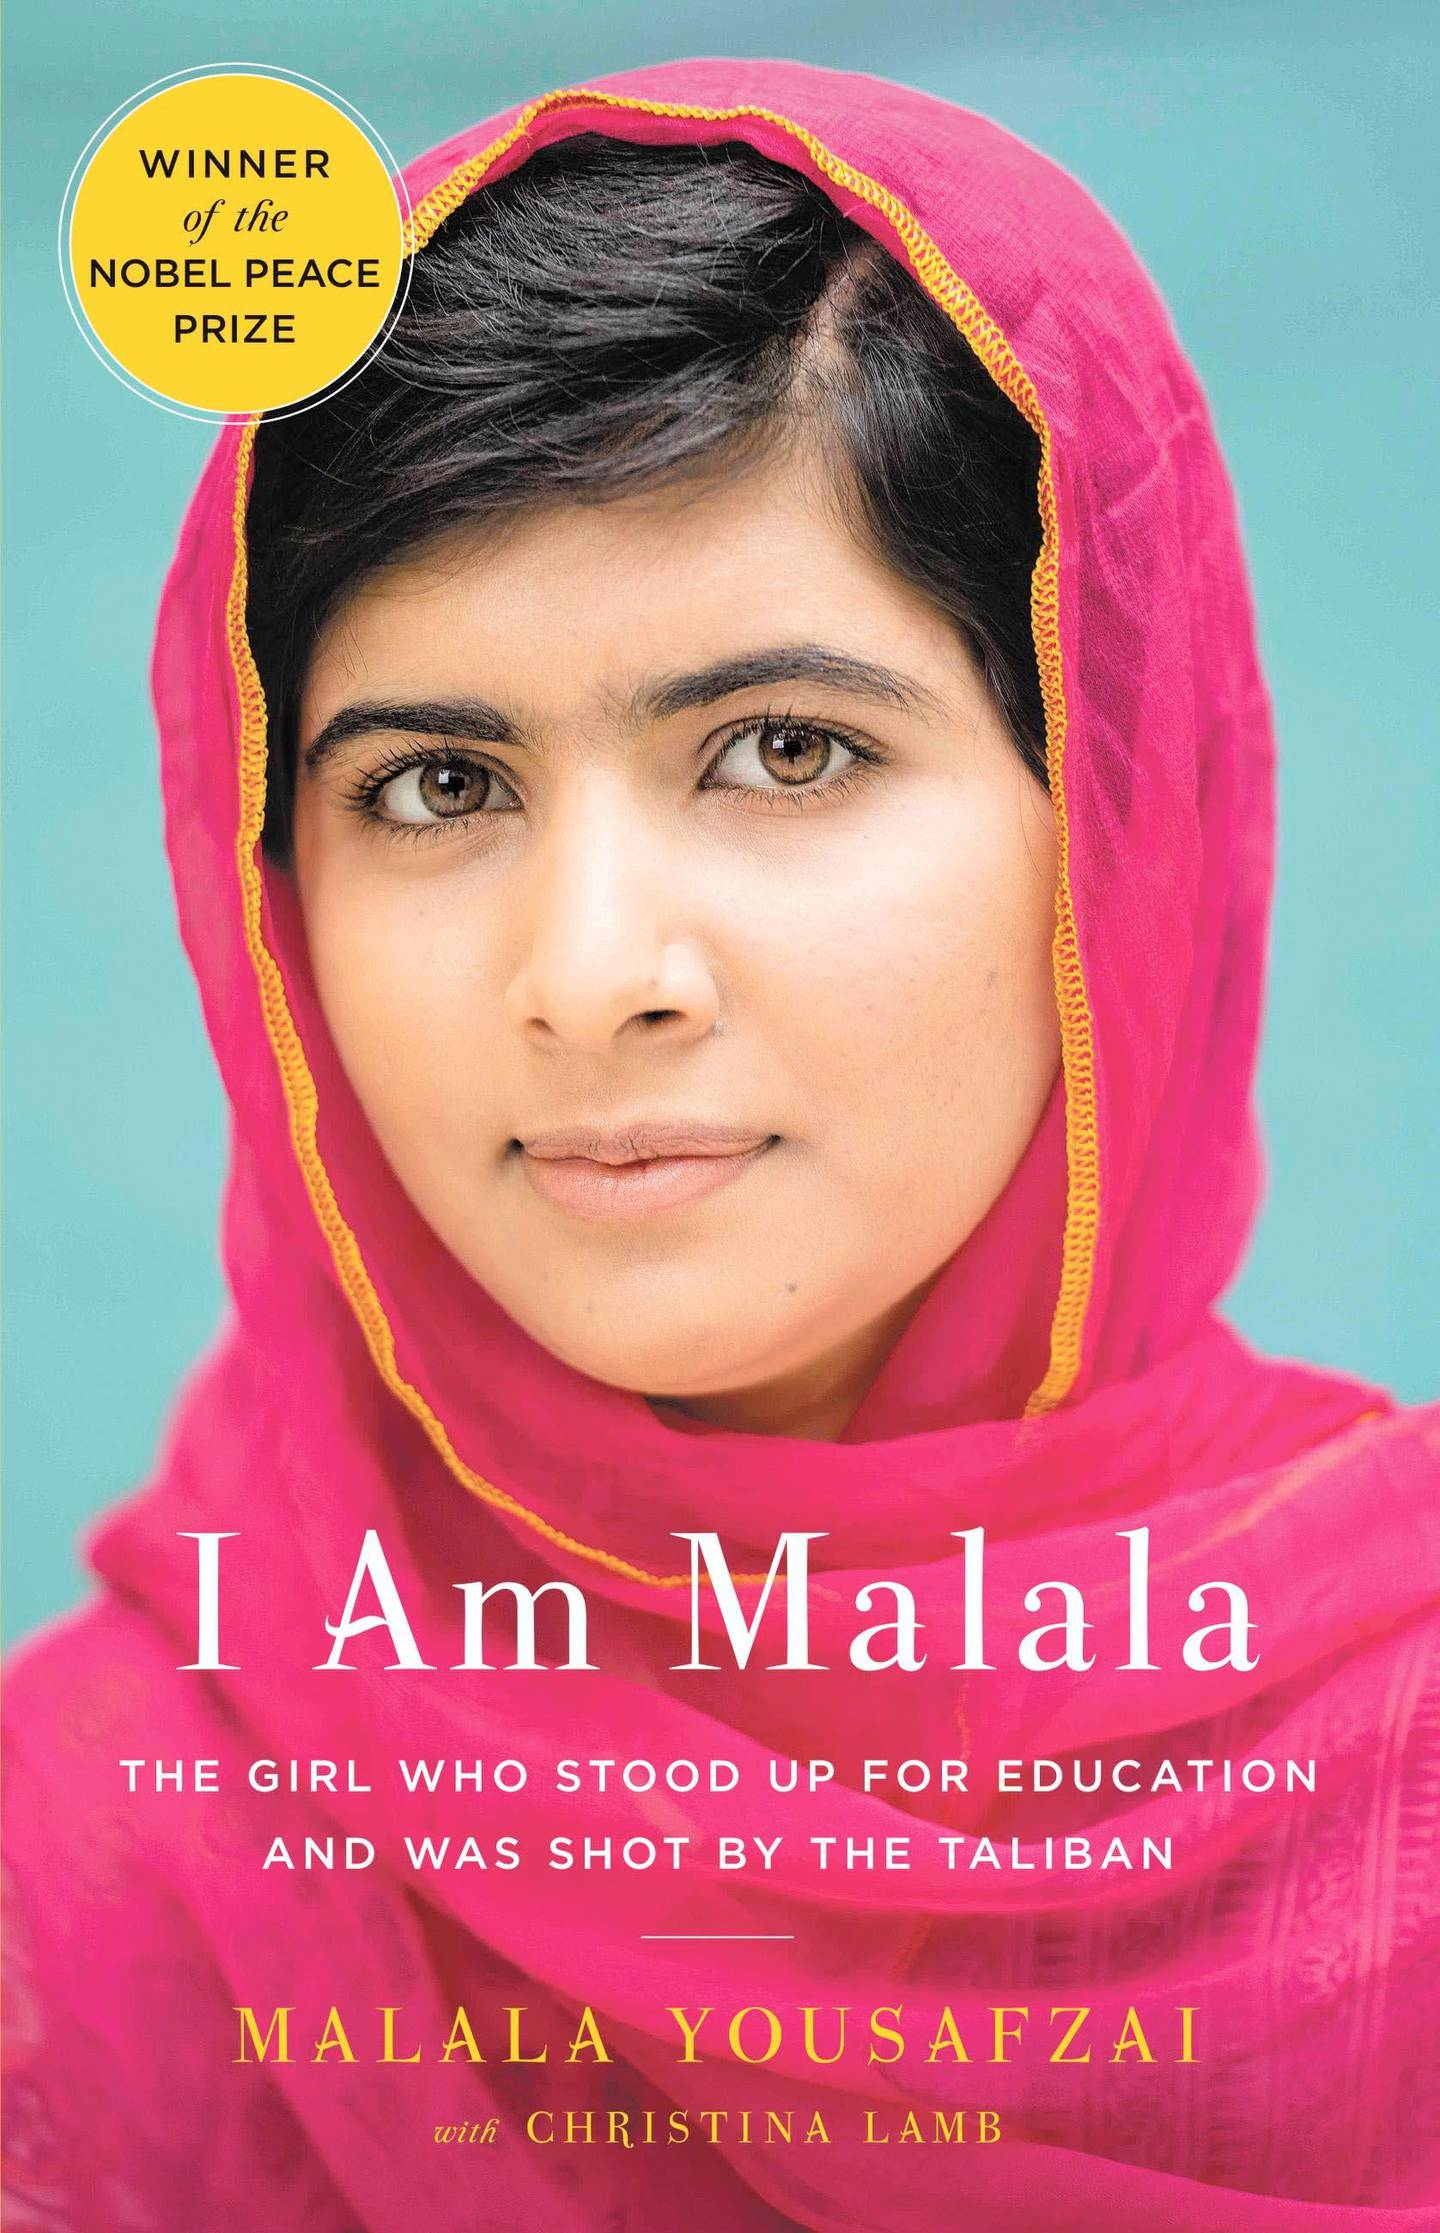 I Am Malala: The Girl Who Stood Up for Education and Was Shot by the Taliban by Malala Yousafzai. Courtesy Little, Brown and Company